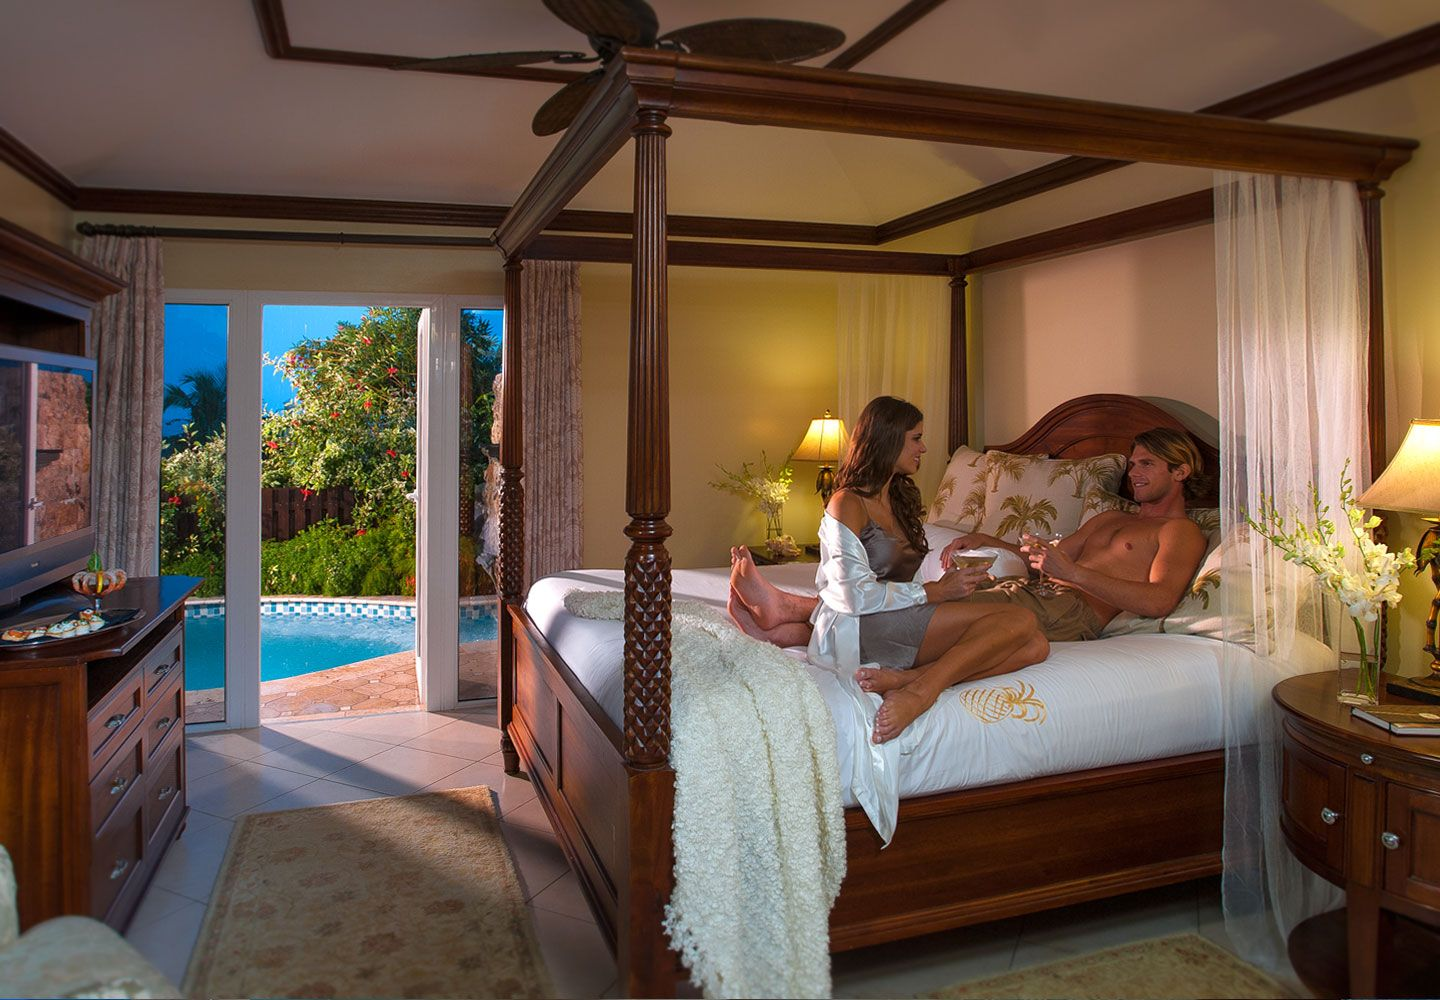 The Ultimate Honeymoon Escape At Sandals Grand Antigua Mediterranean One Bedroom Butler Villa Suite With